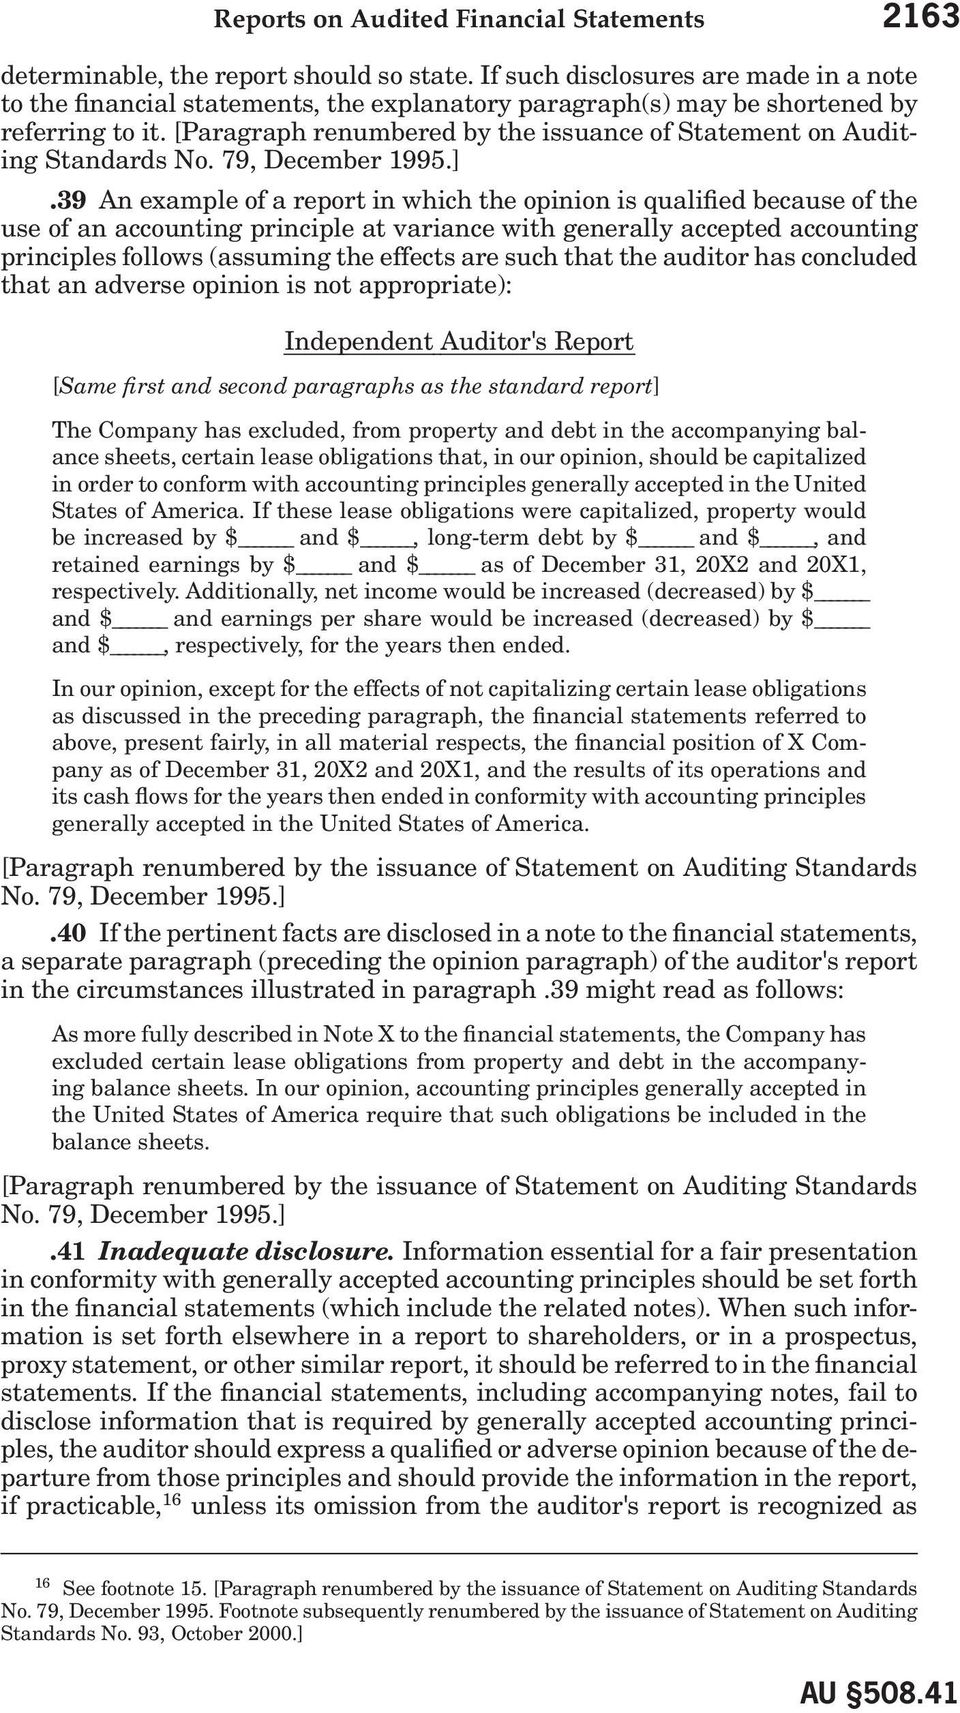 [Paragraph renumbered by the issuance of Statement on Auditing Standards No. 79, December 1995.].